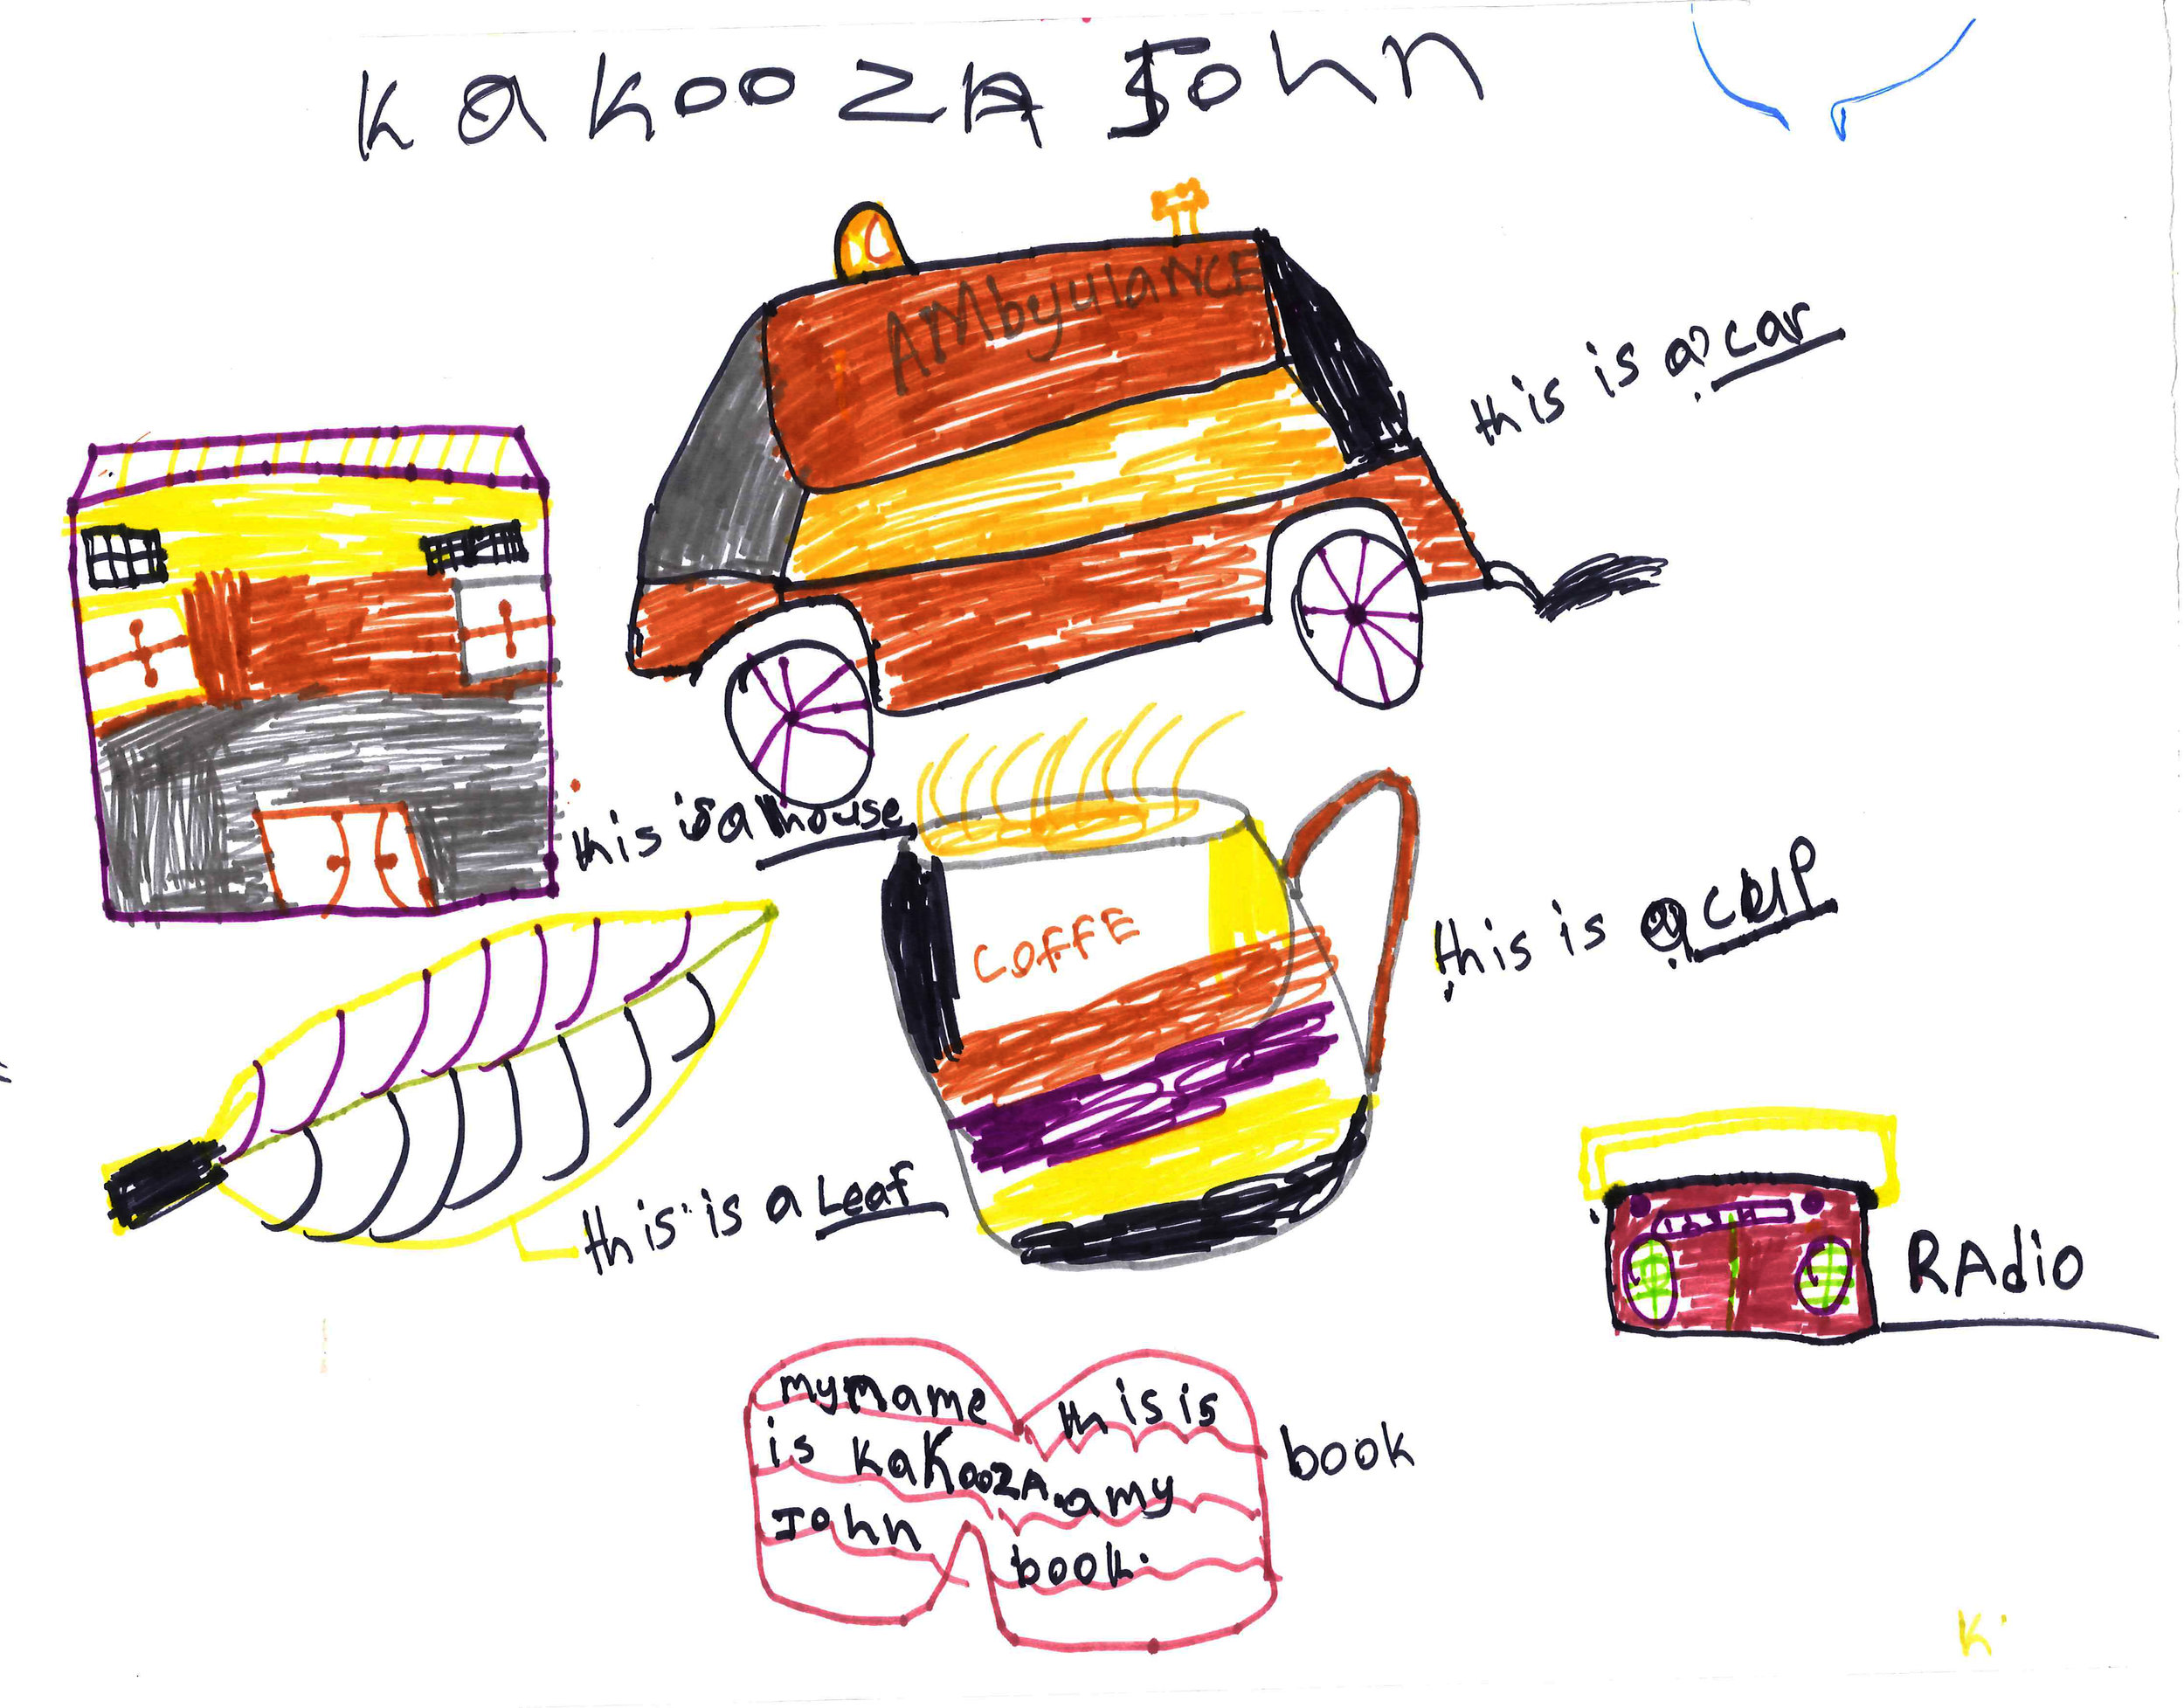 Kakooza John drawing